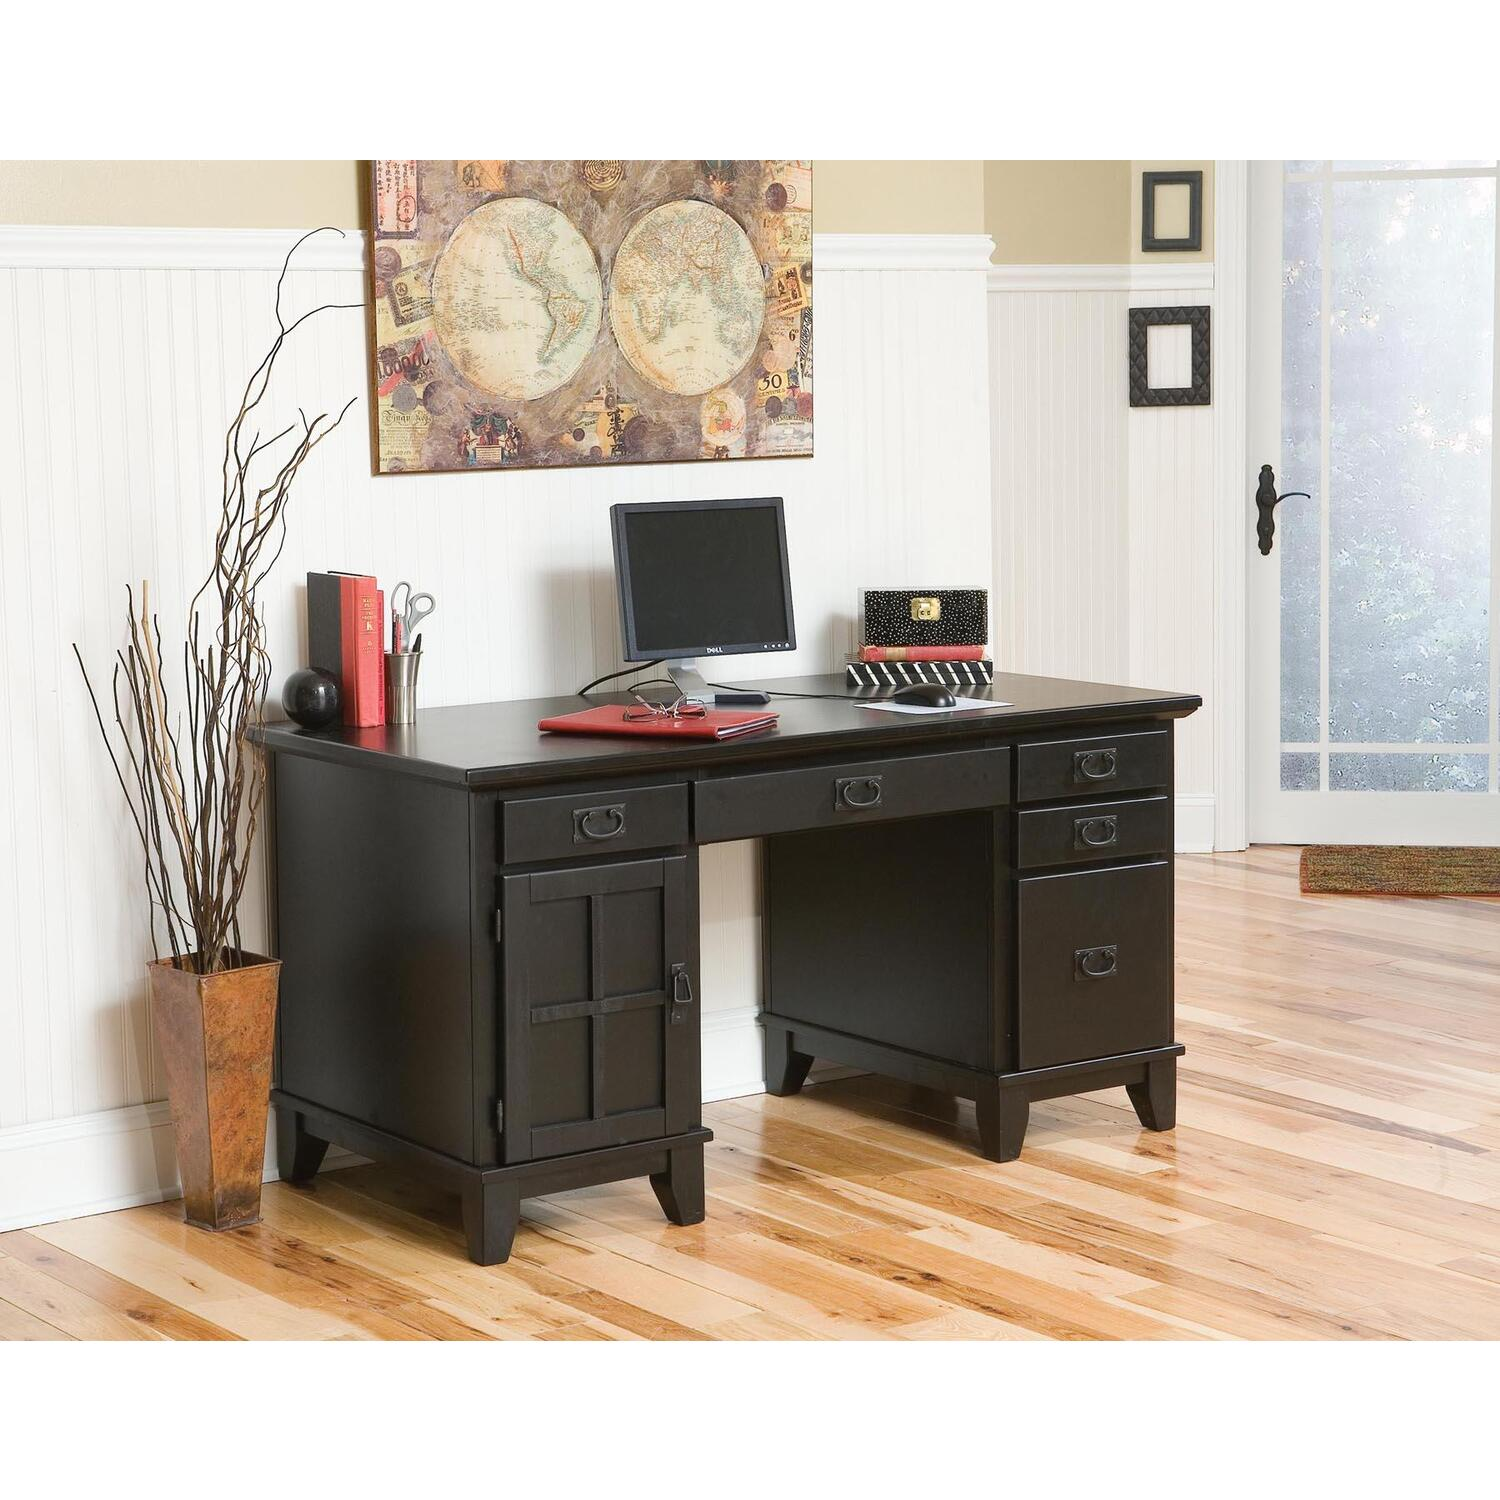 Home styles arts and crafts pedestal desk by oj commerce 860 04